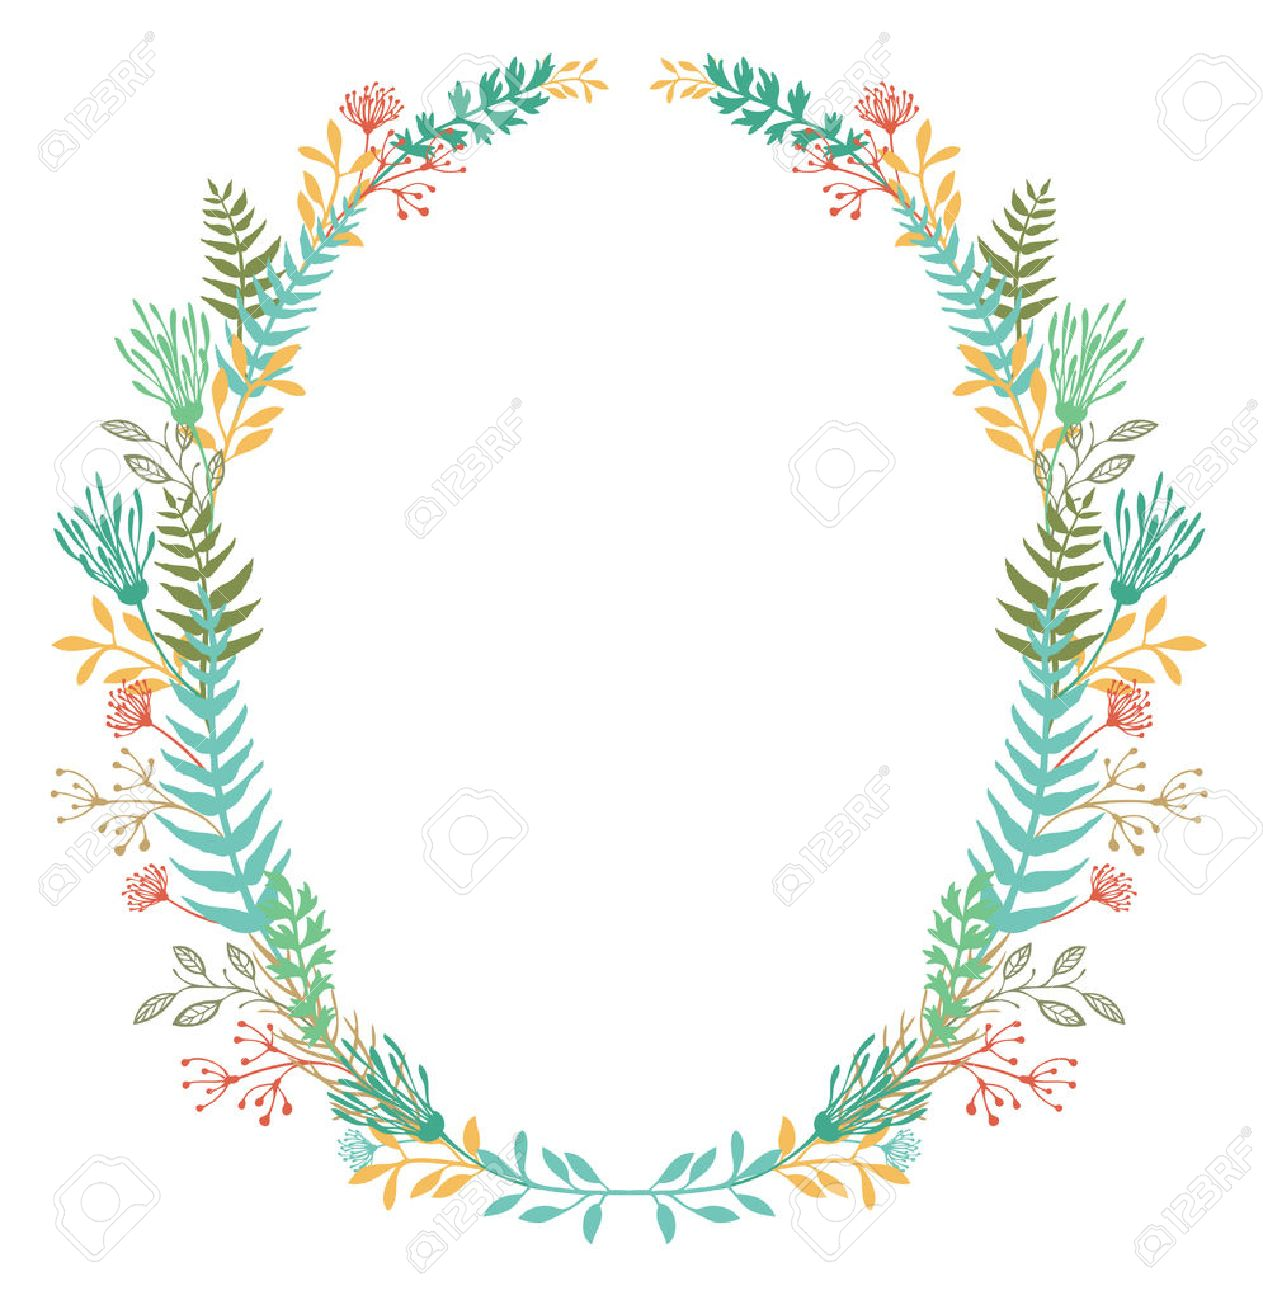 Card With Oval Frame Of Flowers And Ferns Royalty Free Cliparts